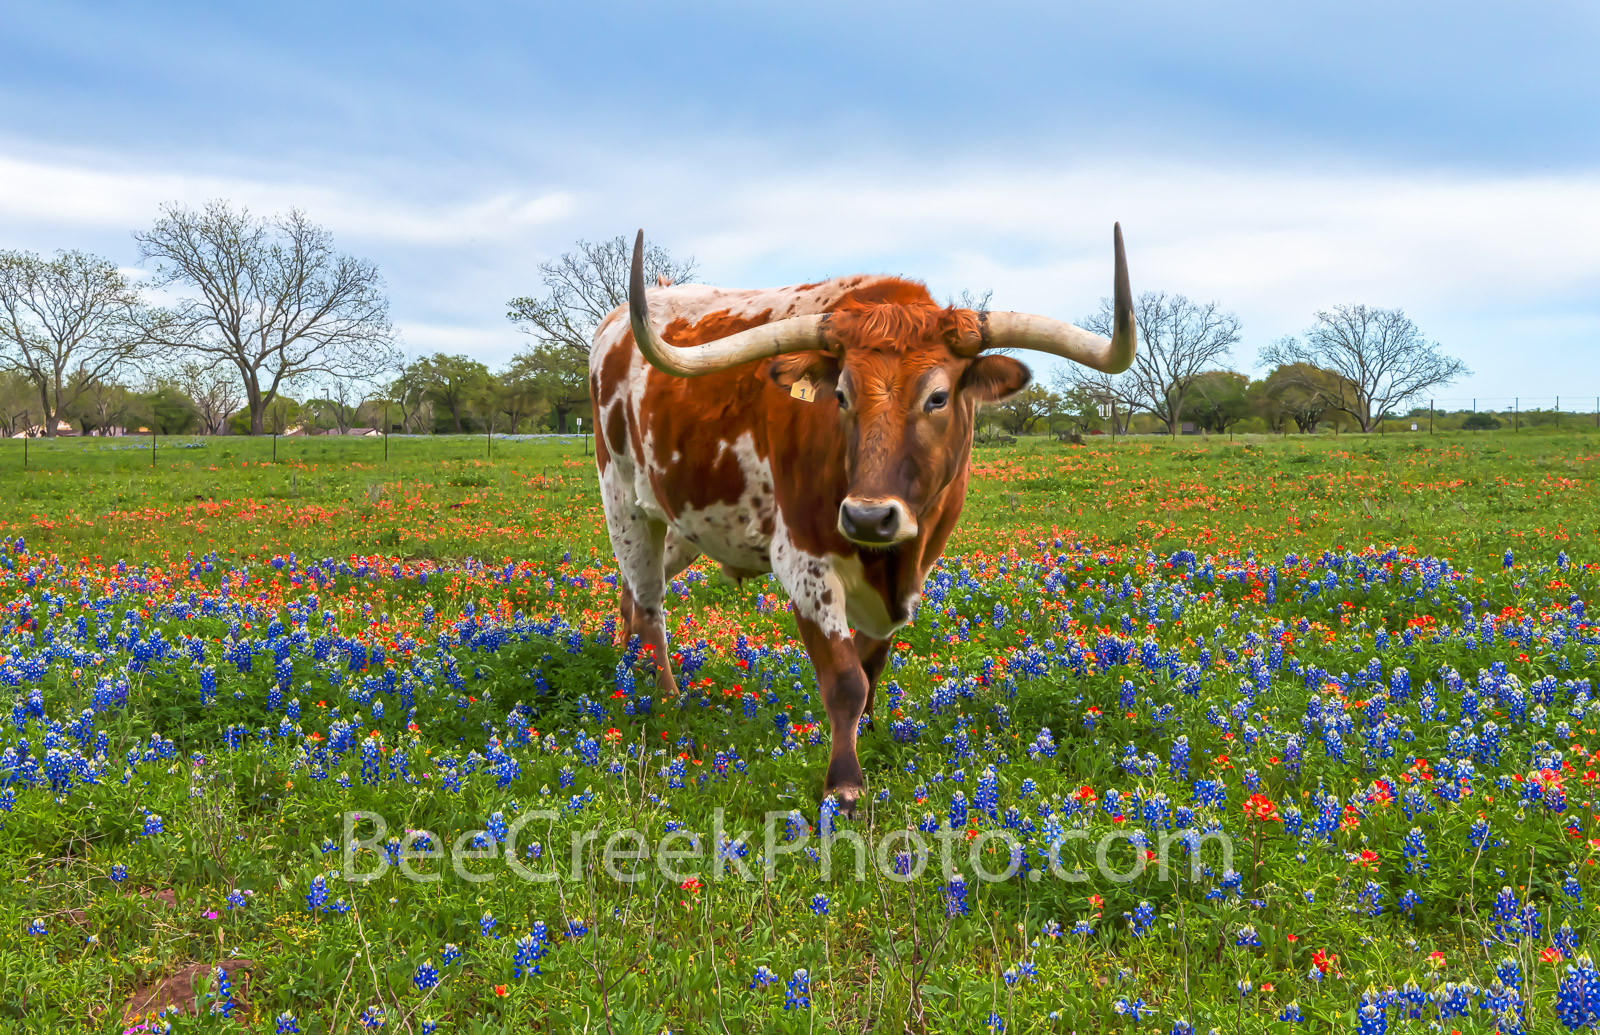 bluebonnets, indian paintbrush, wildflowers, texas wildflowers, texas bluebonnets, longhorns, texas hill country, cattle, herd, steers, horns, hill country, bluebonnets in the texas hill country, wild, photo